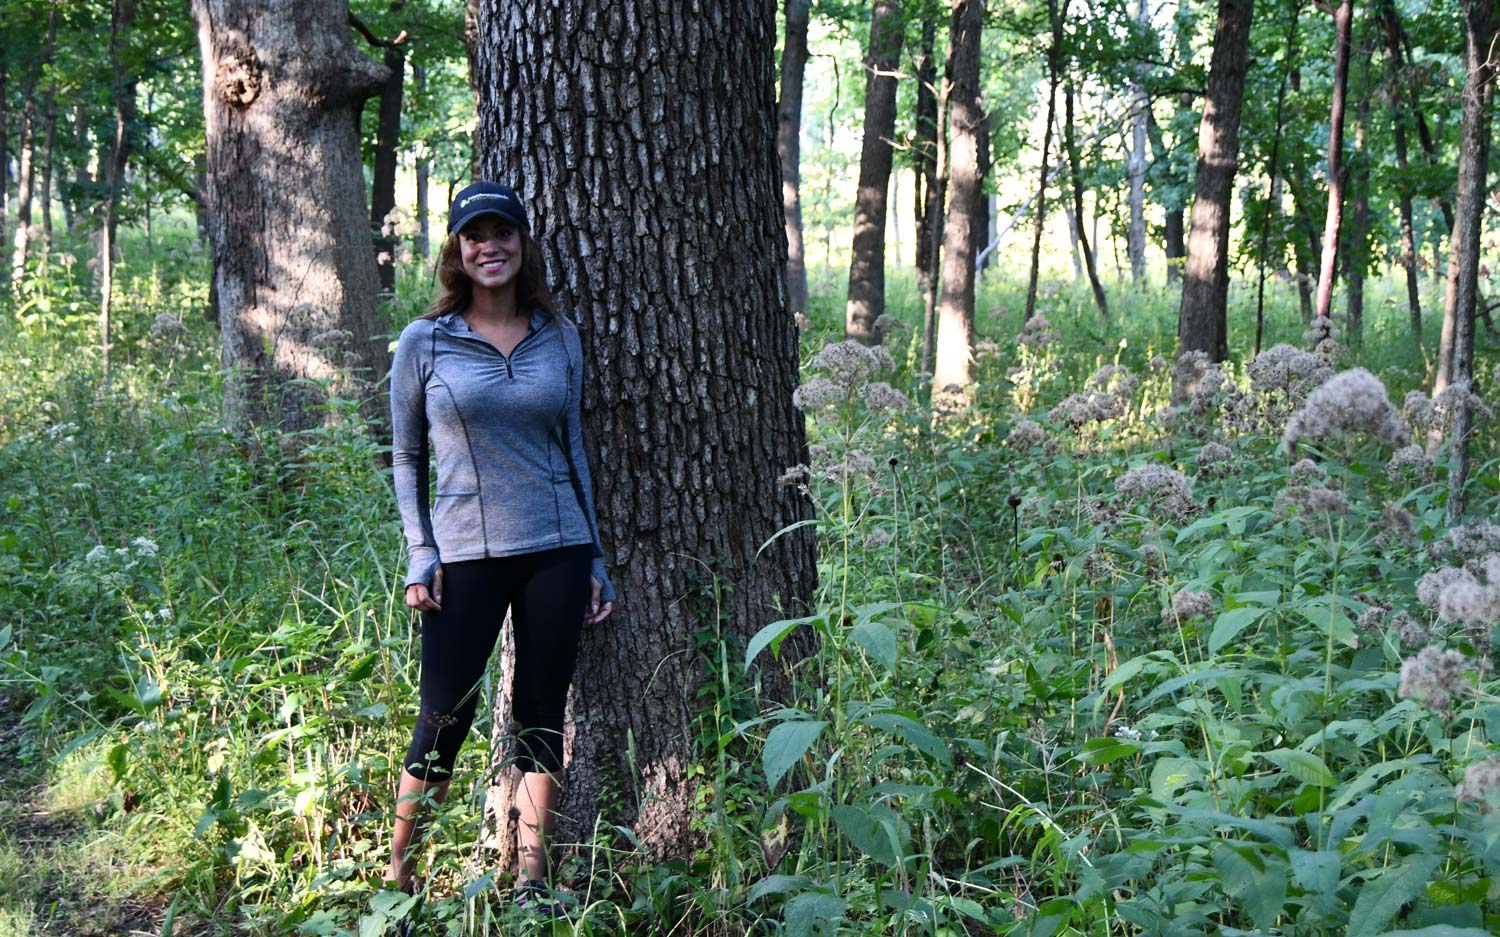 Photo for: Denise Steffen's 'Happy Place': Mighty oaks along the Hickory Creek Bikeway